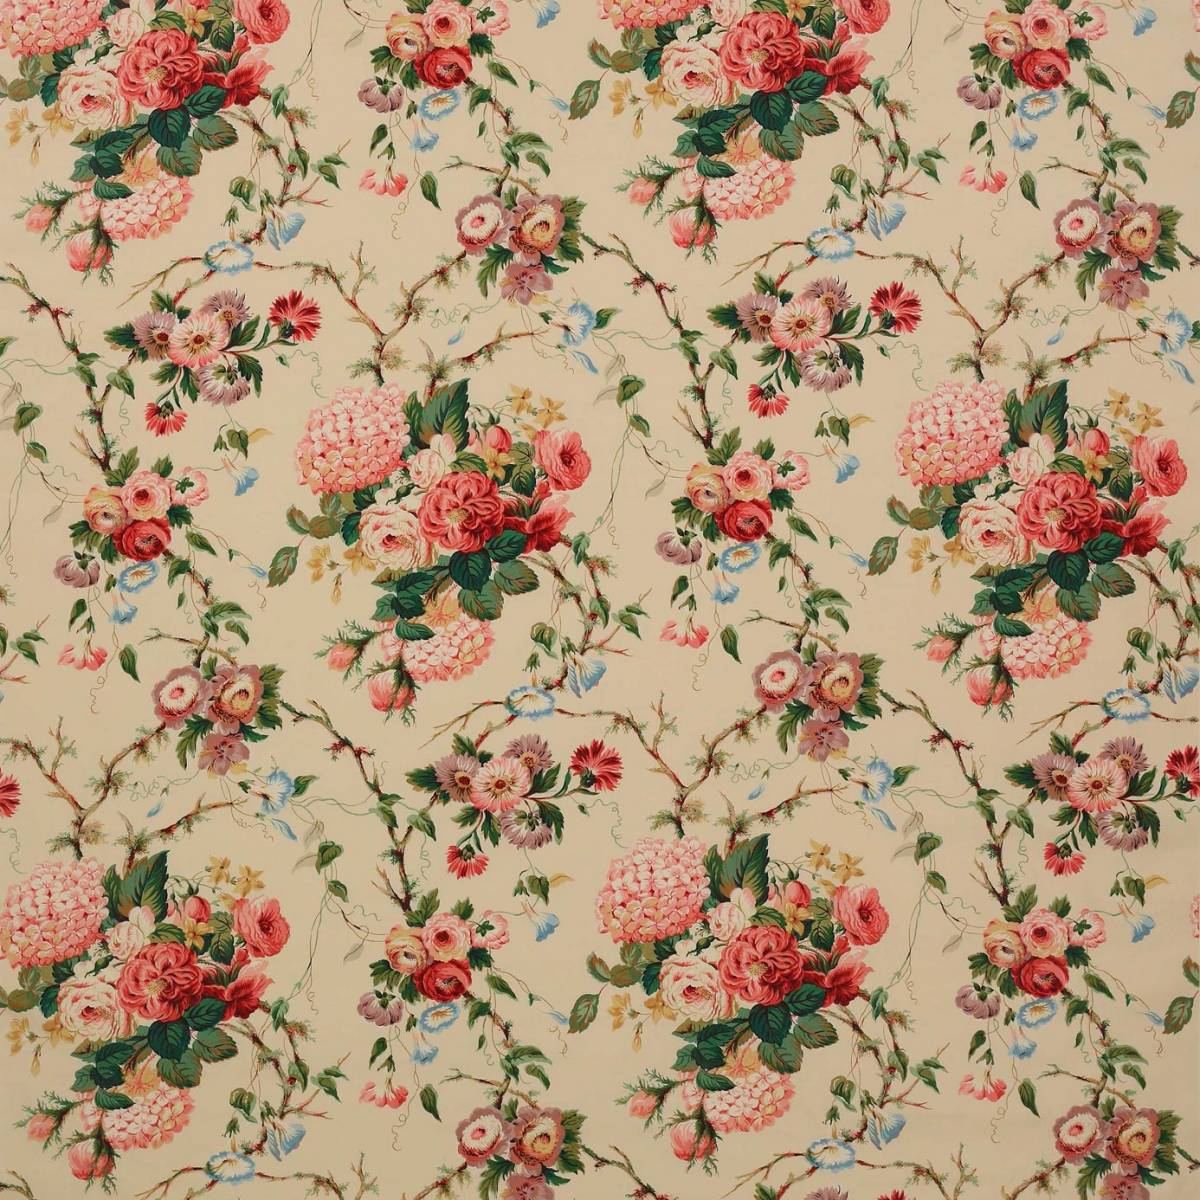 amberley fabric pink green f1707 02 colefax fowler classic prints fabrics collection. Black Bedroom Furniture Sets. Home Design Ideas